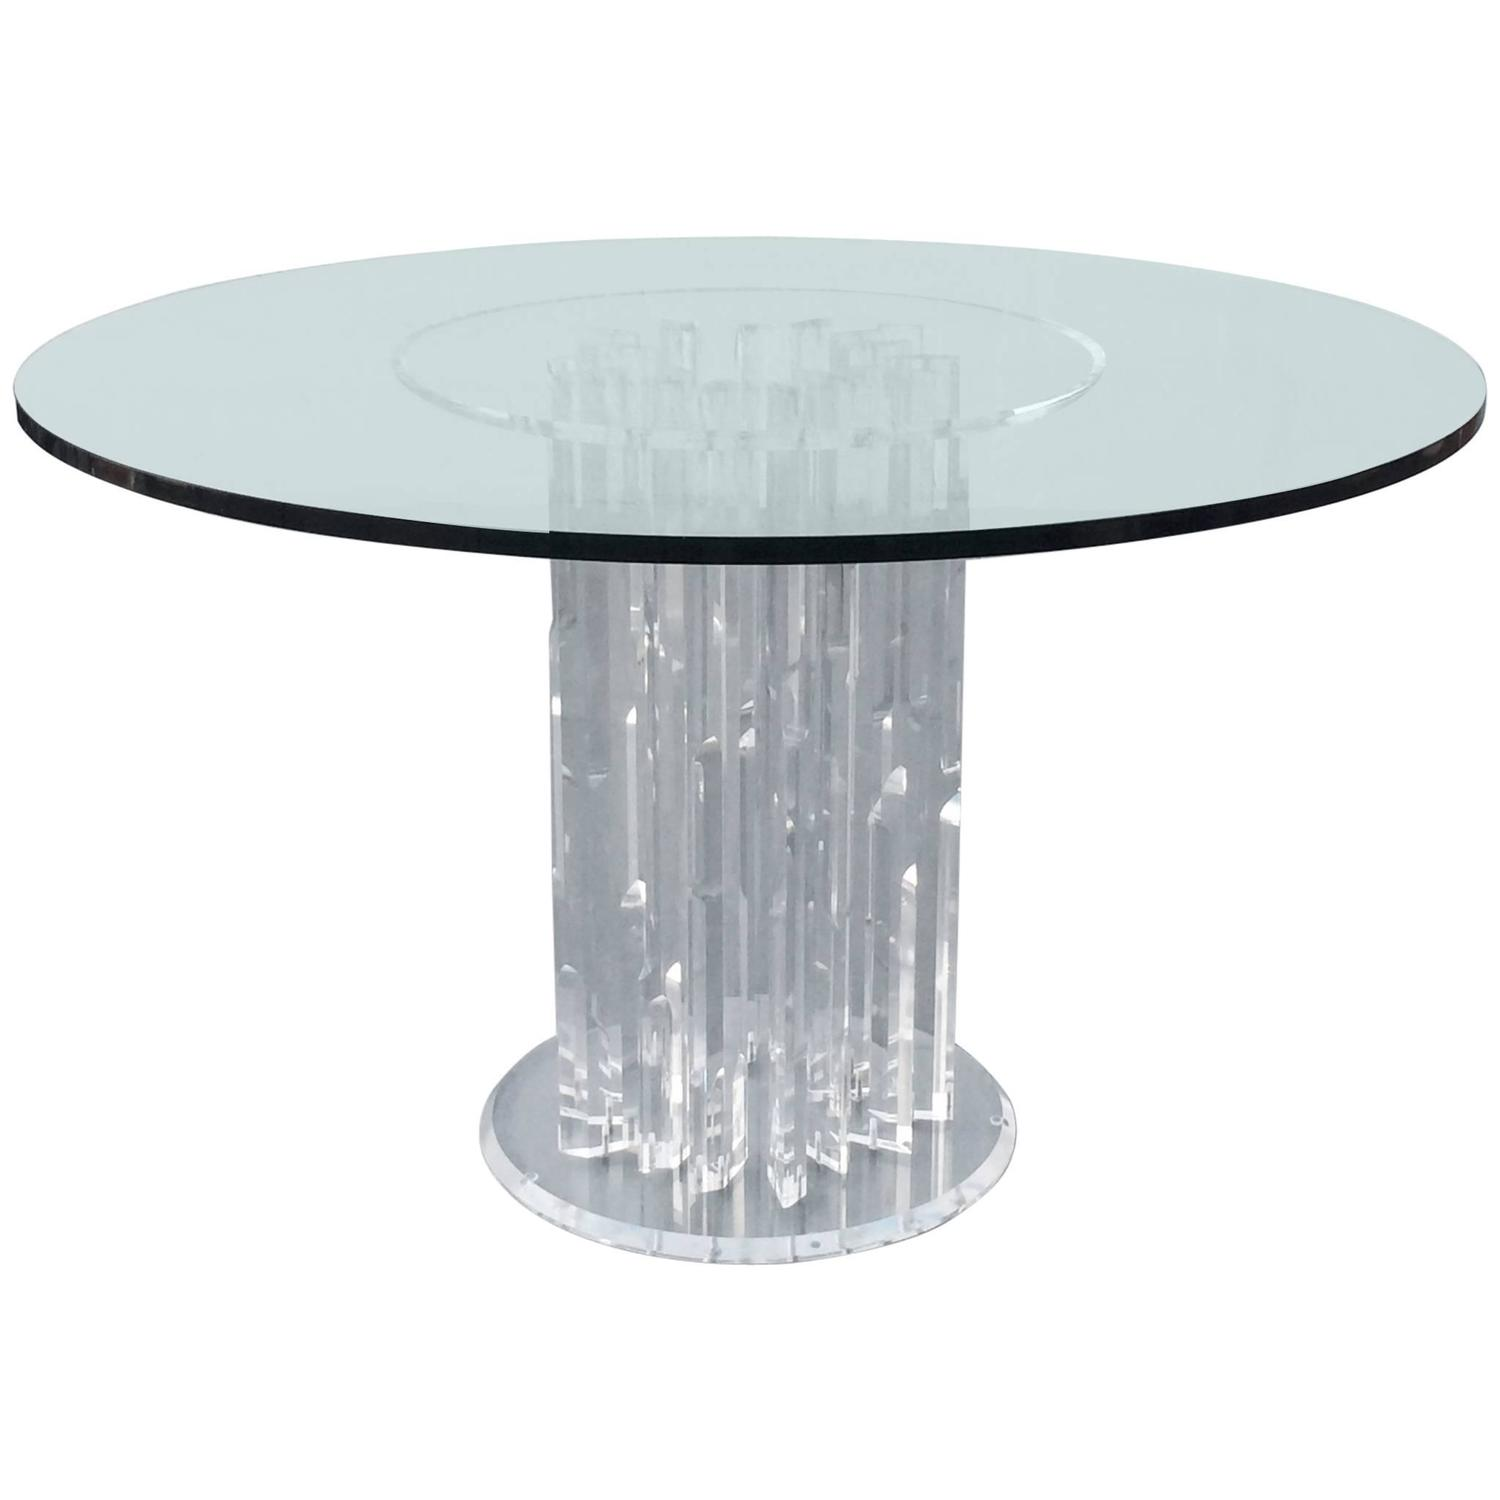 Acrylic And Glass Dining Table, Circa 1970s For Sale At